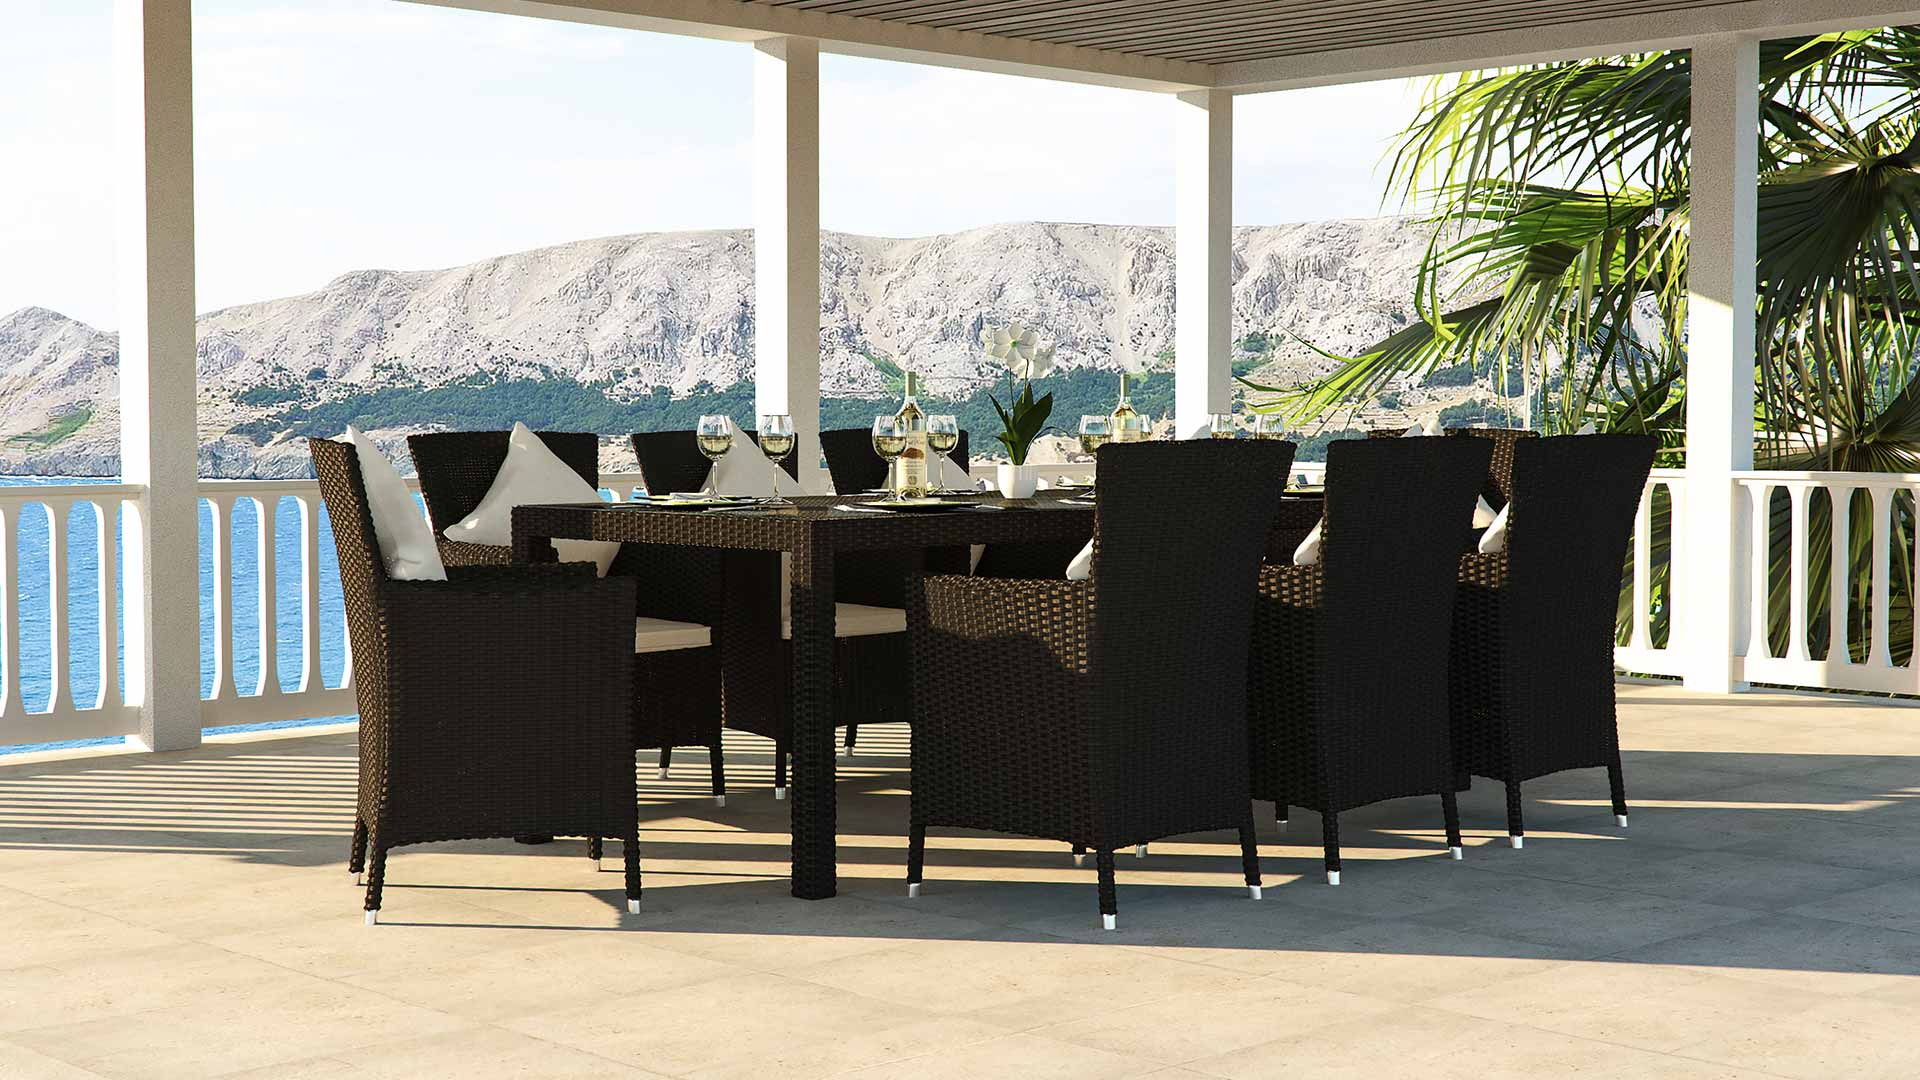 artelia austria terrassen esstisch set f r 8 personen aus polyrattan. Black Bedroom Furniture Sets. Home Design Ideas